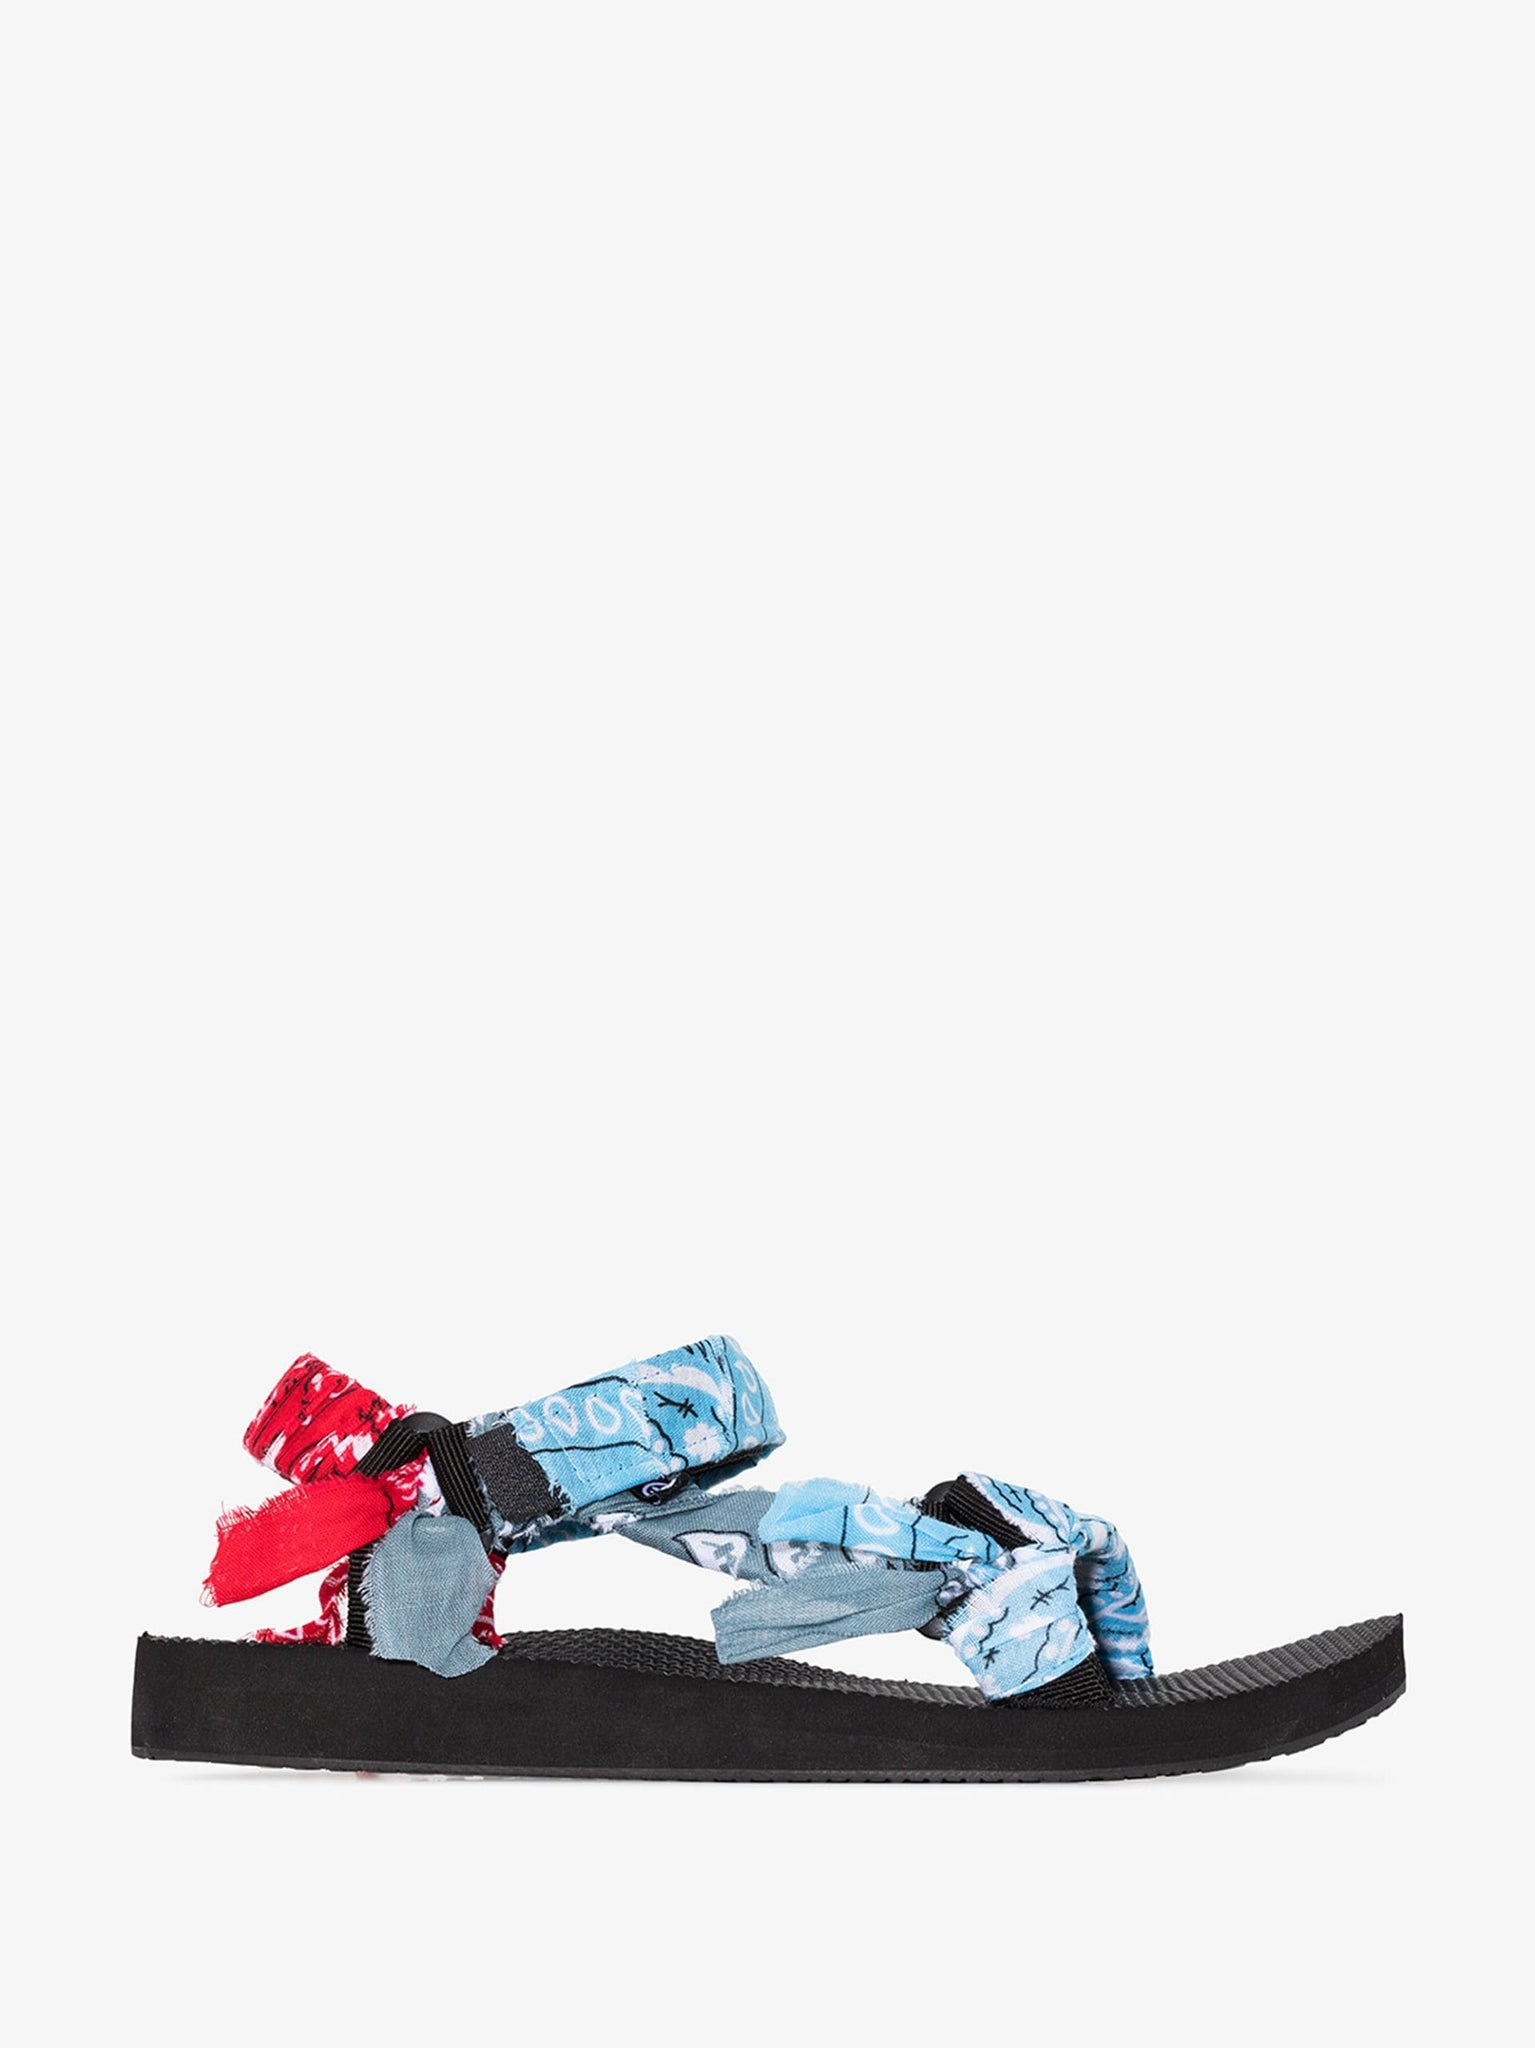 TREKKY BANDANA SANDALS - MIX BLUE - ARIZONA LOVE